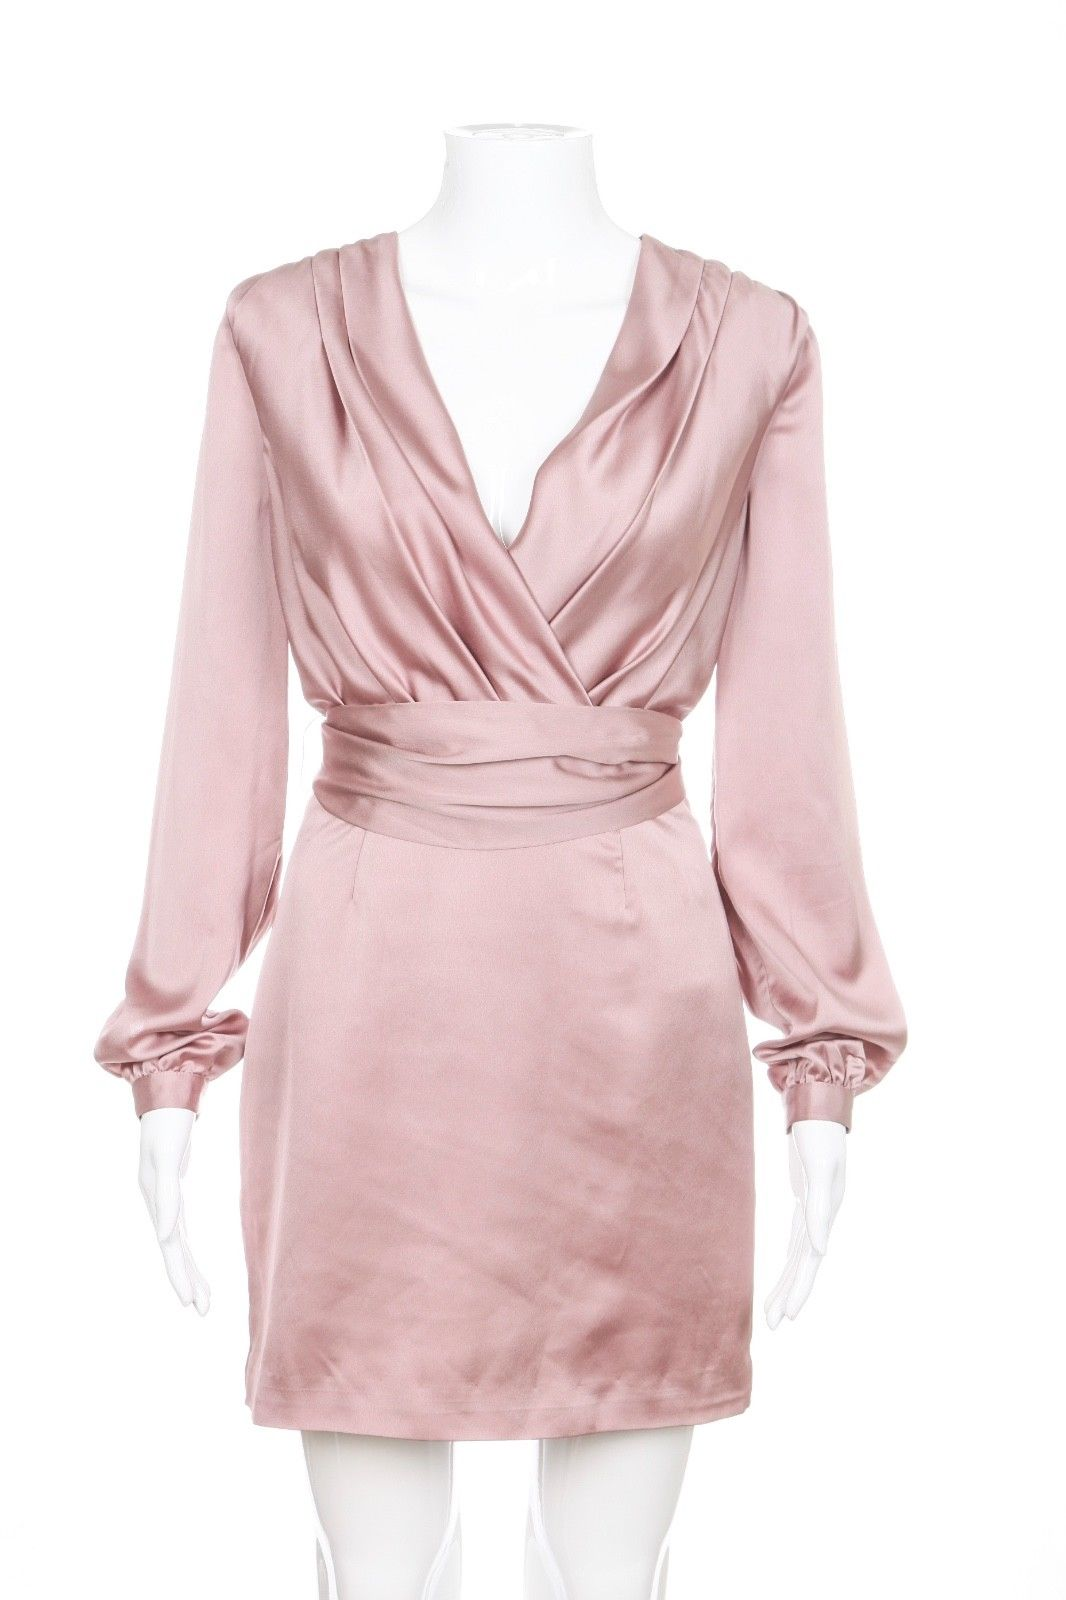 "Brand: Finders Keepers  Style: Wrap Neck, V-Neck  Size: X-Small, 33""(Total Length)  Color: Dusty Rose  Material:  100% Polyester  Condition: Excellent"